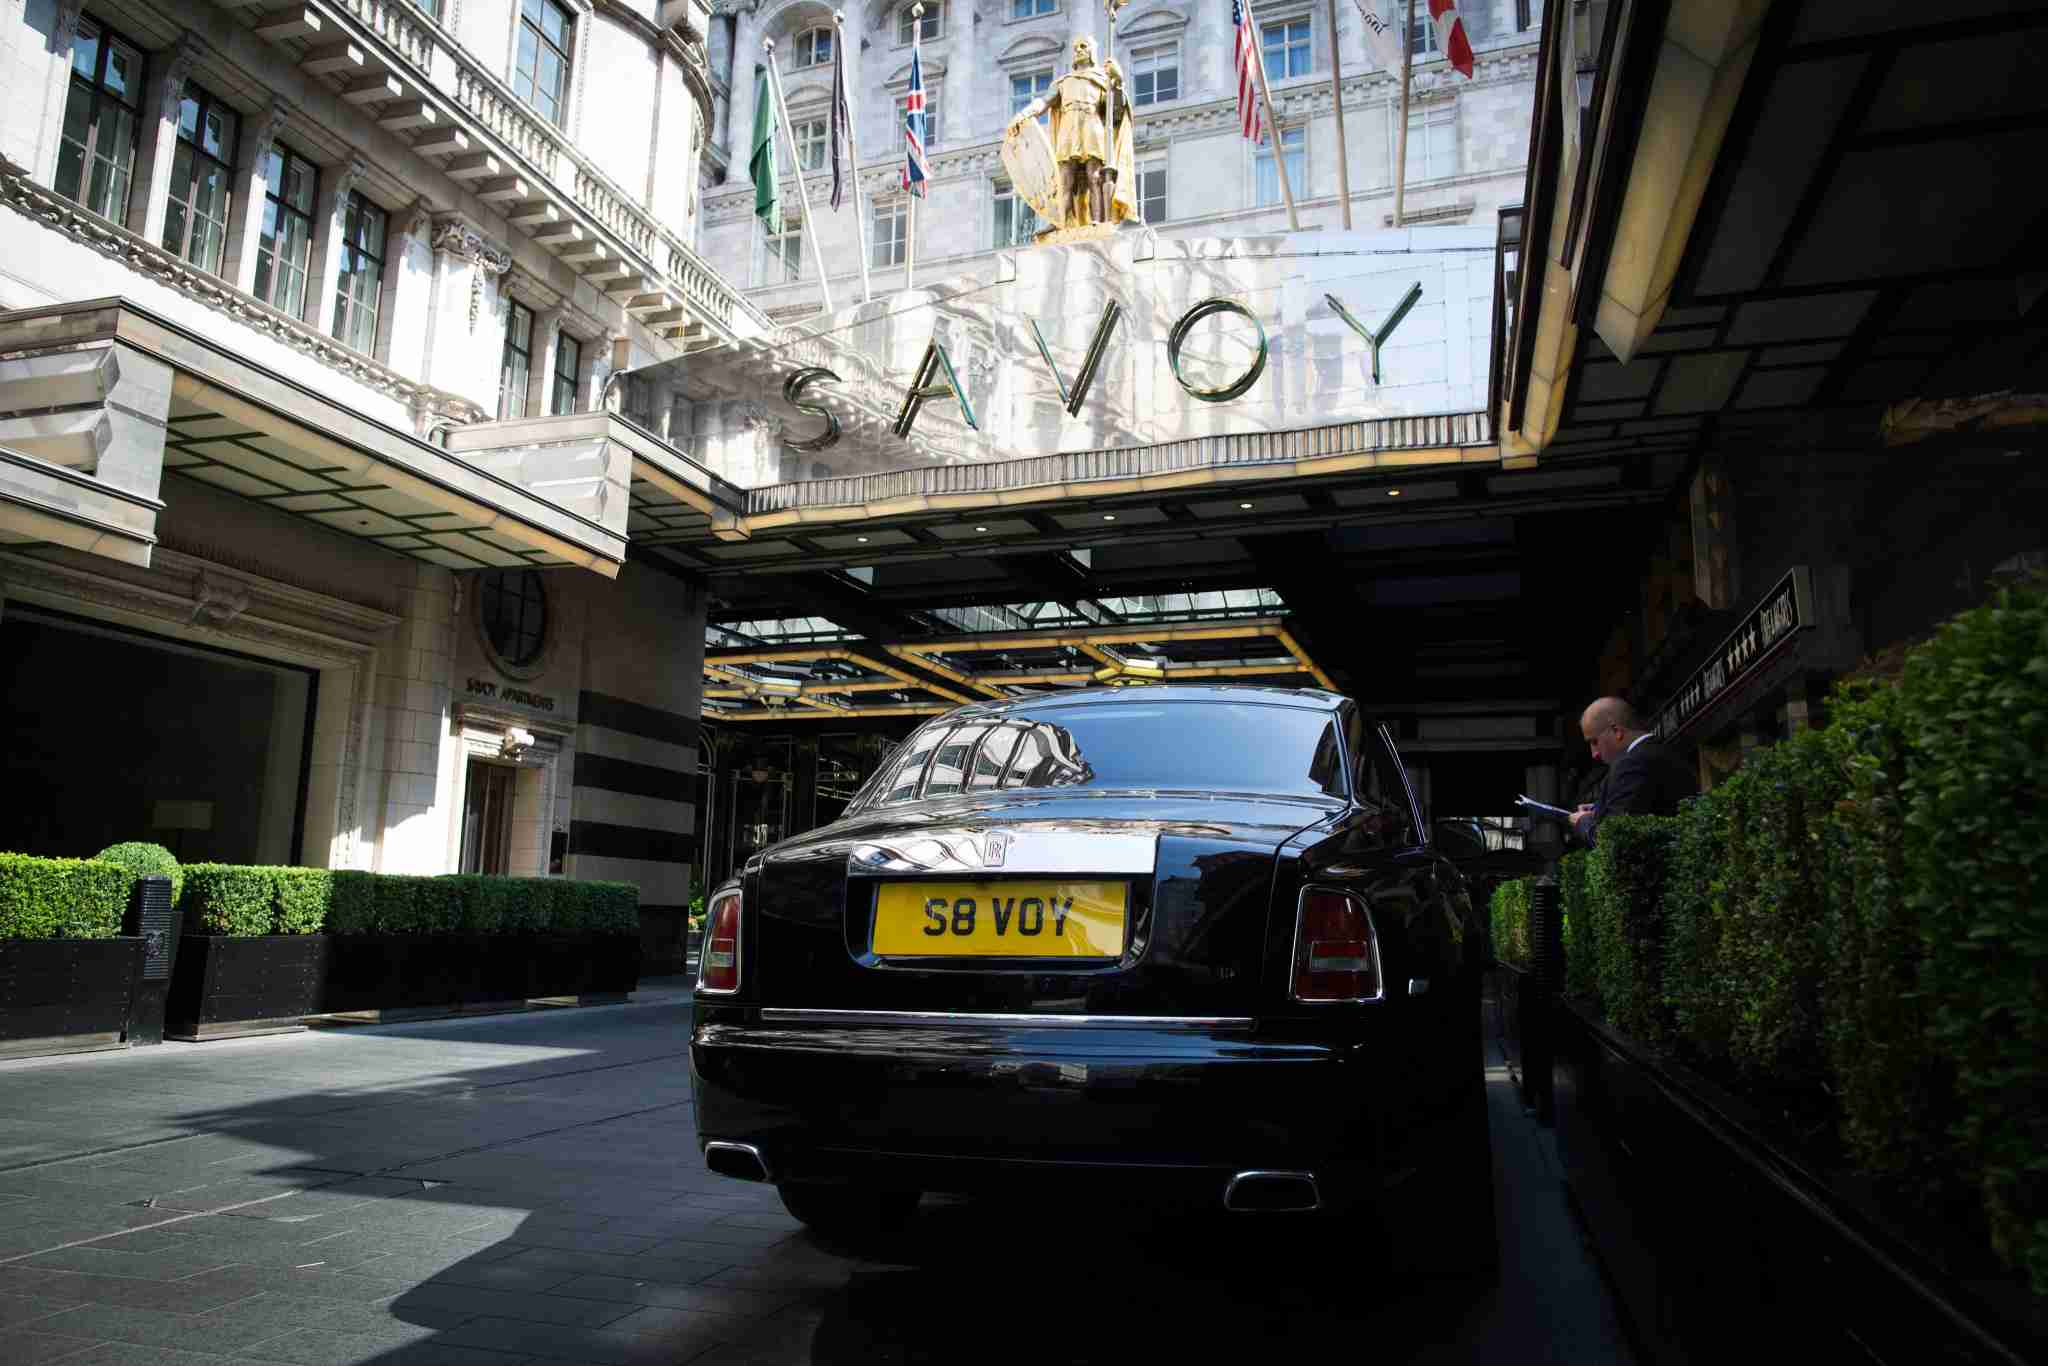 The Savoy in London.